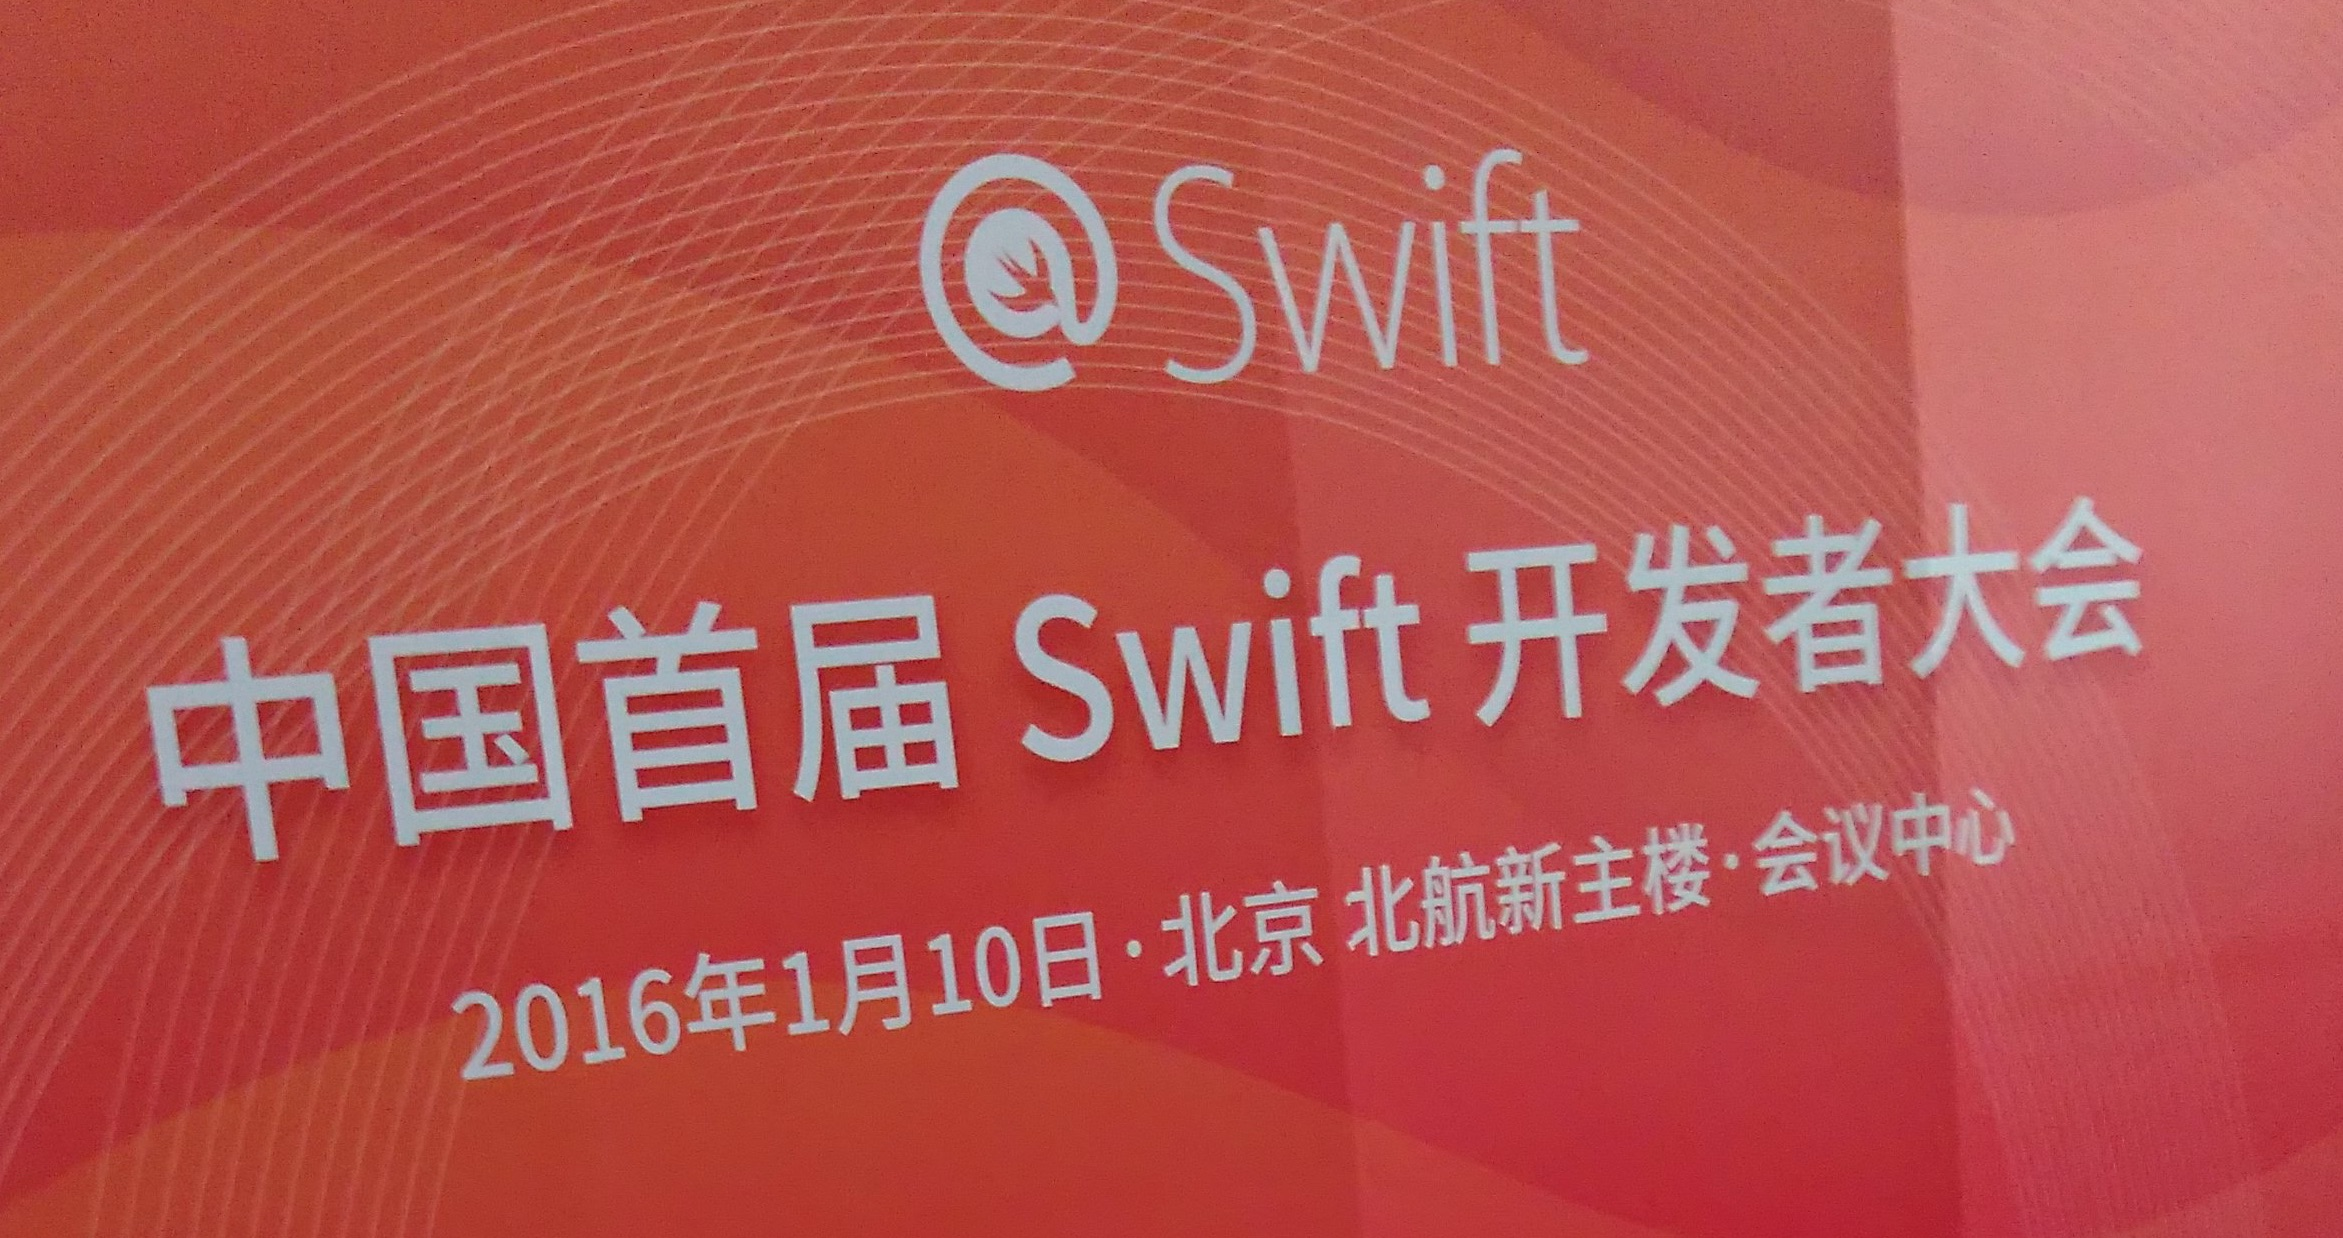 China Swift Conference 2015